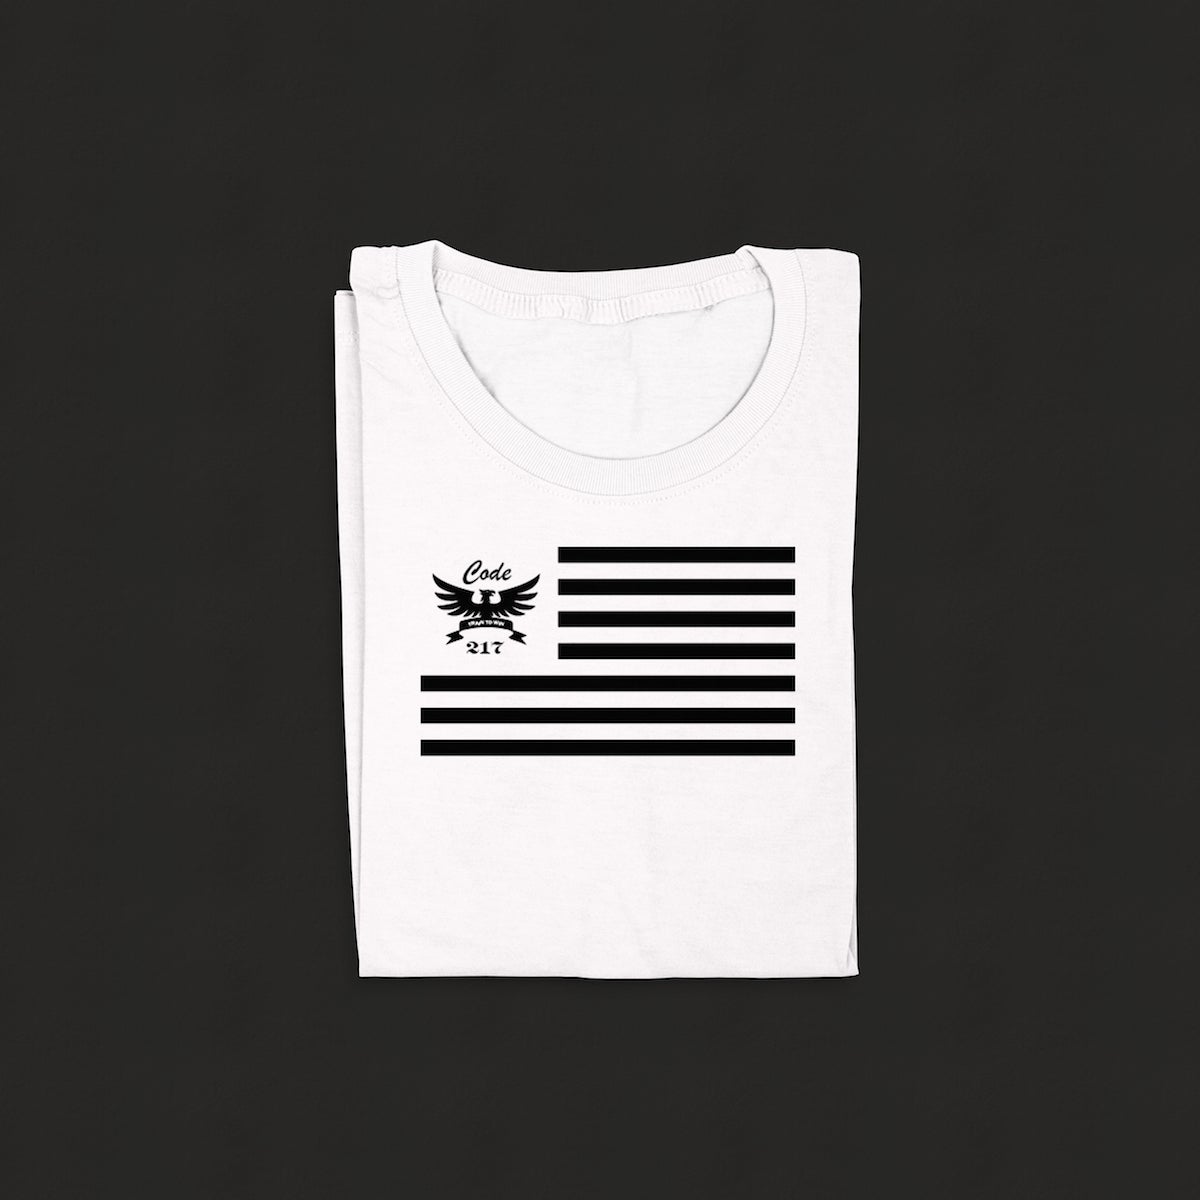 Image of 217 Flag T-Shirt